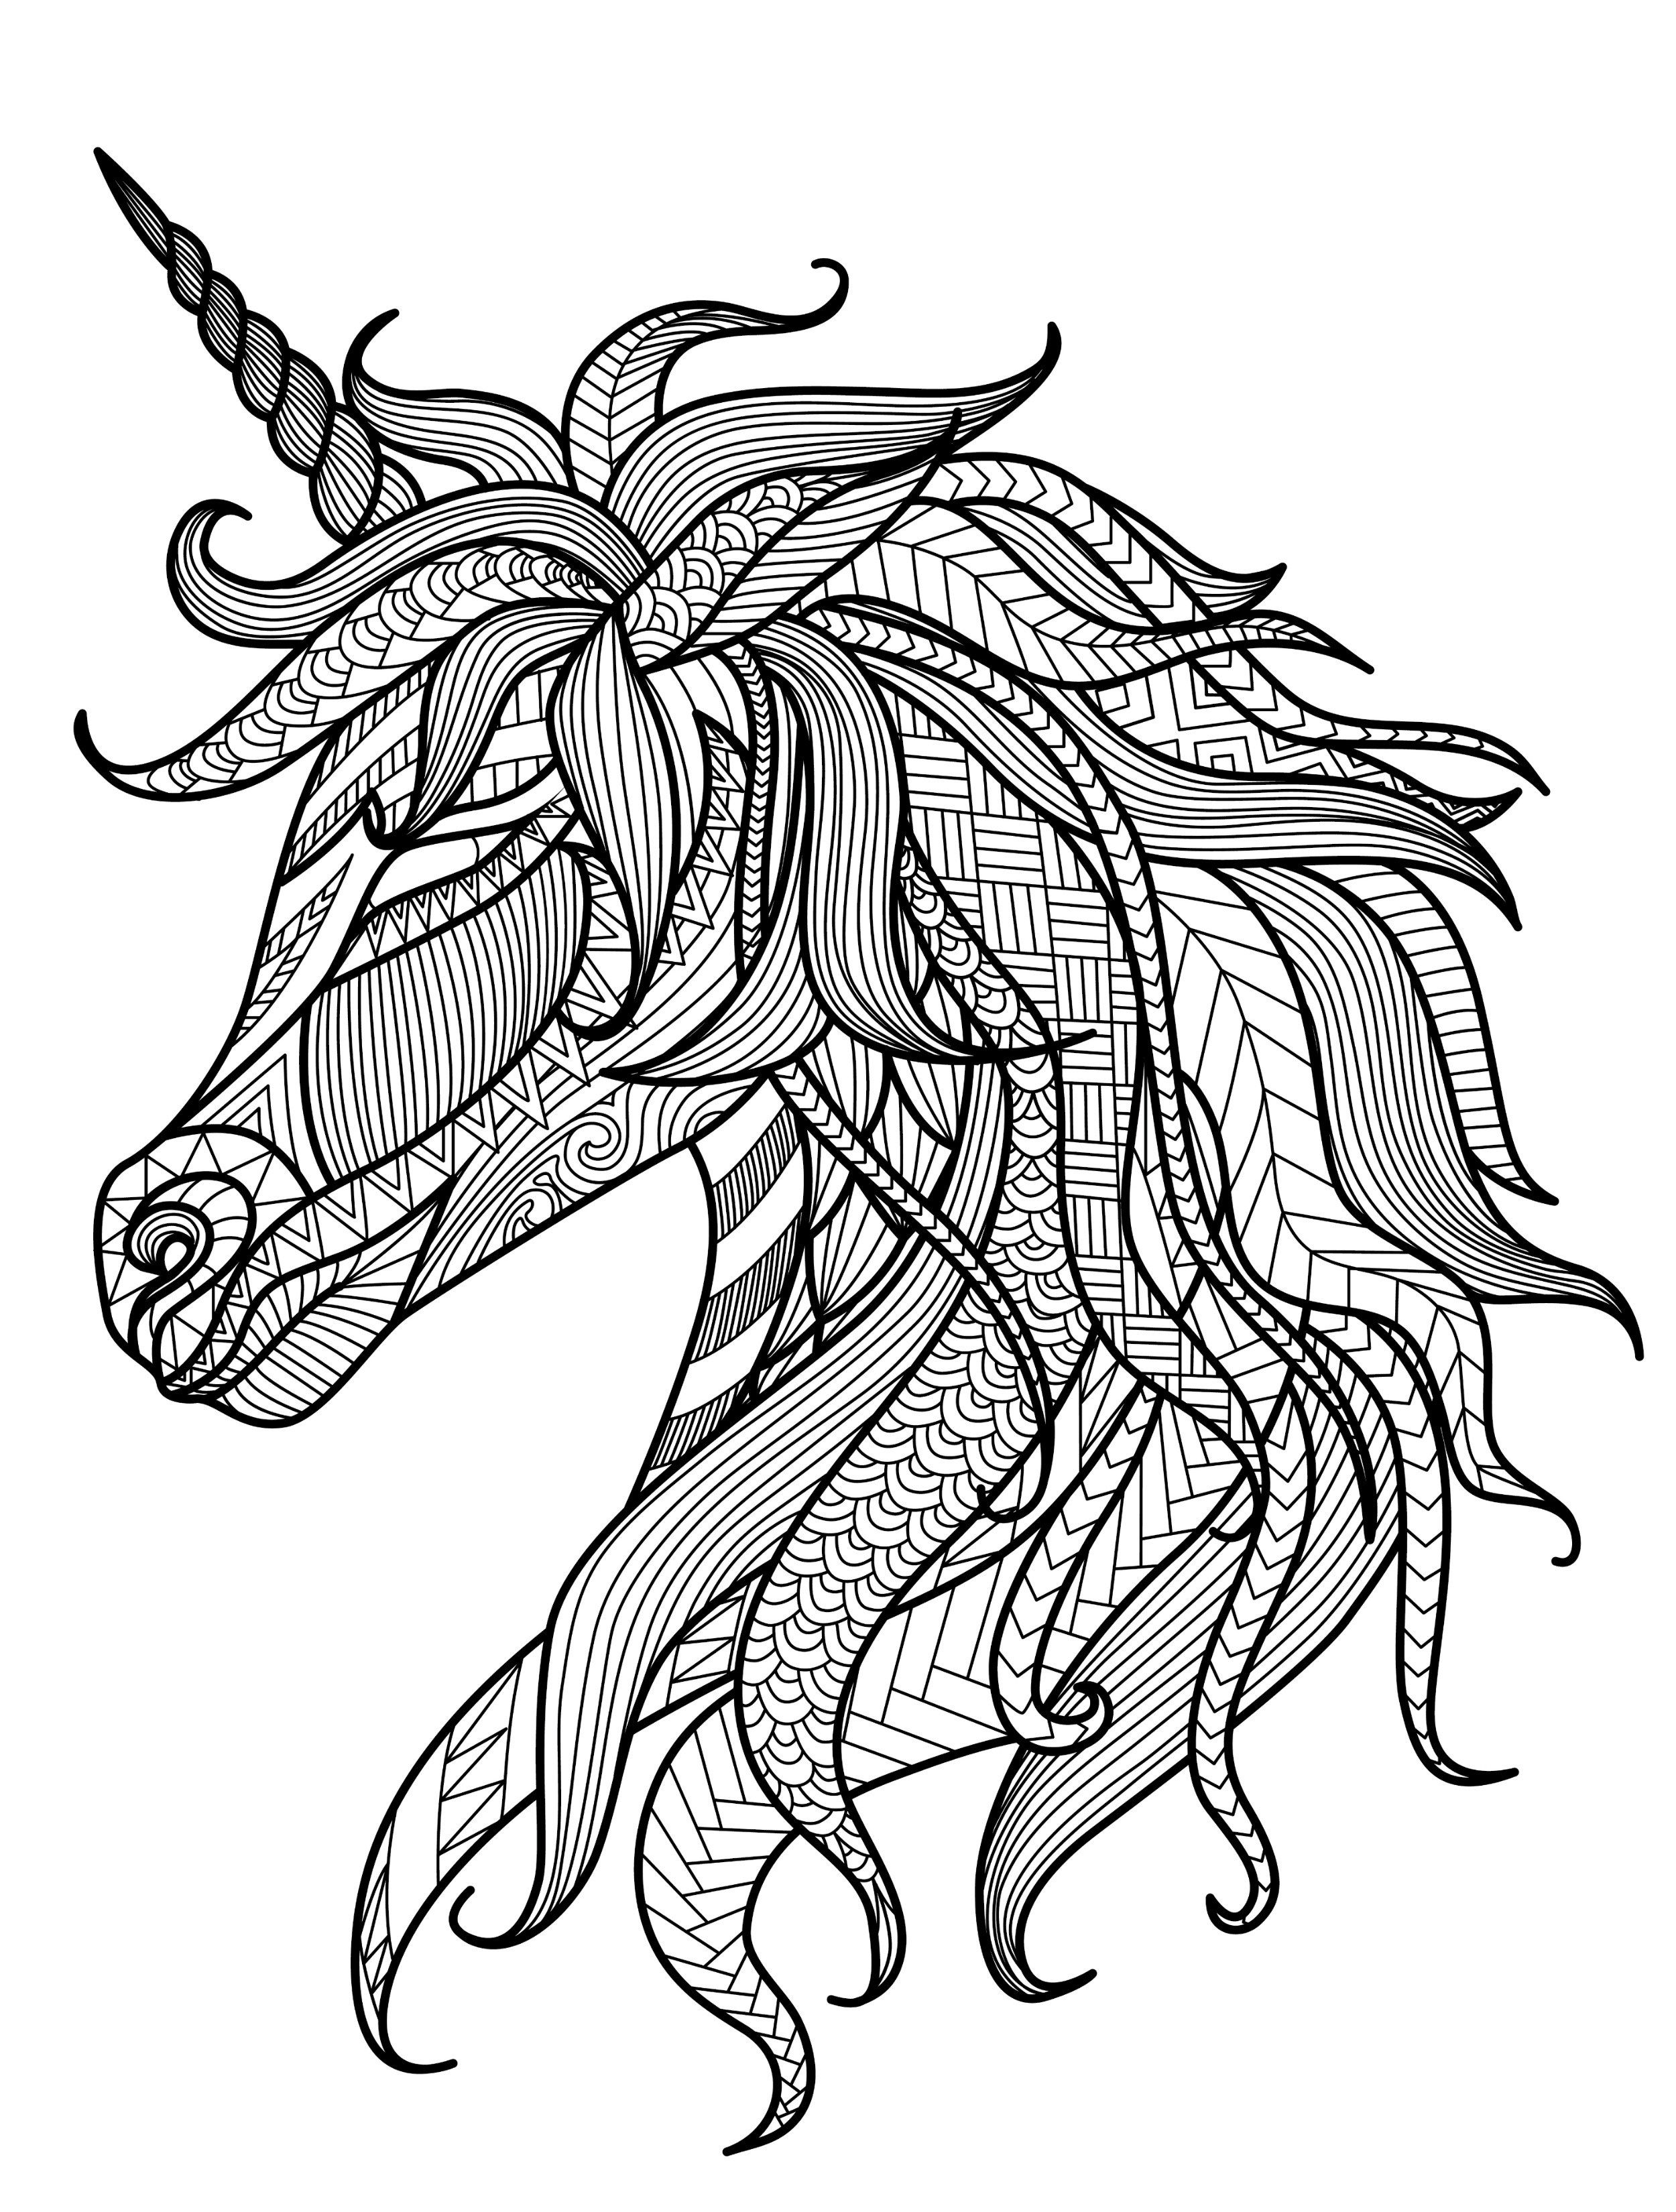 downloadable coloring pages # 1